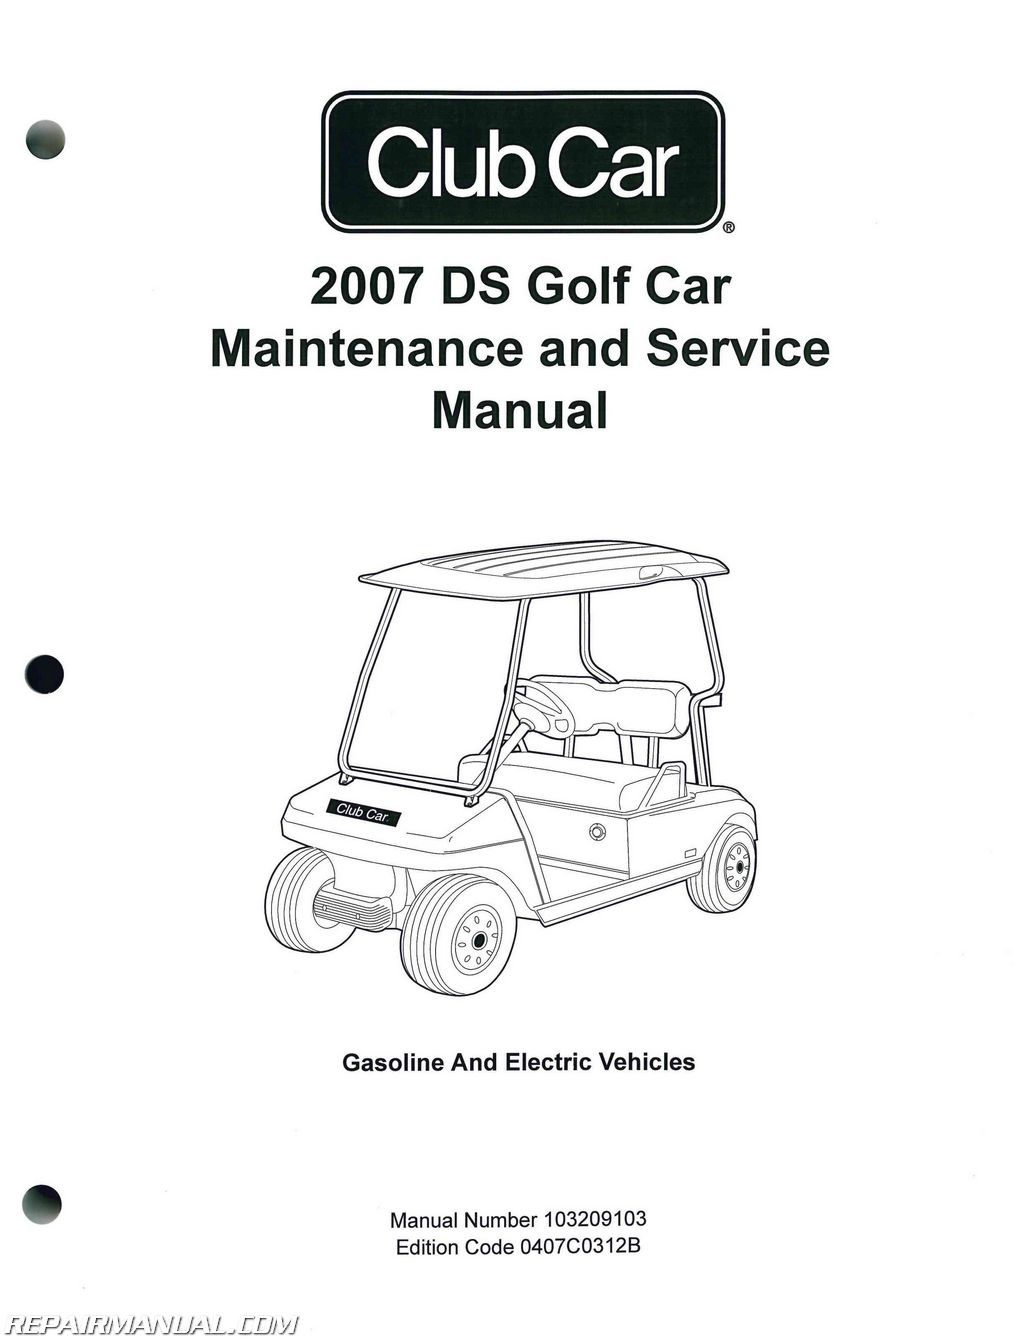 Club Car Manuals And Diagrams on 2005 dodge viper wiring diagram